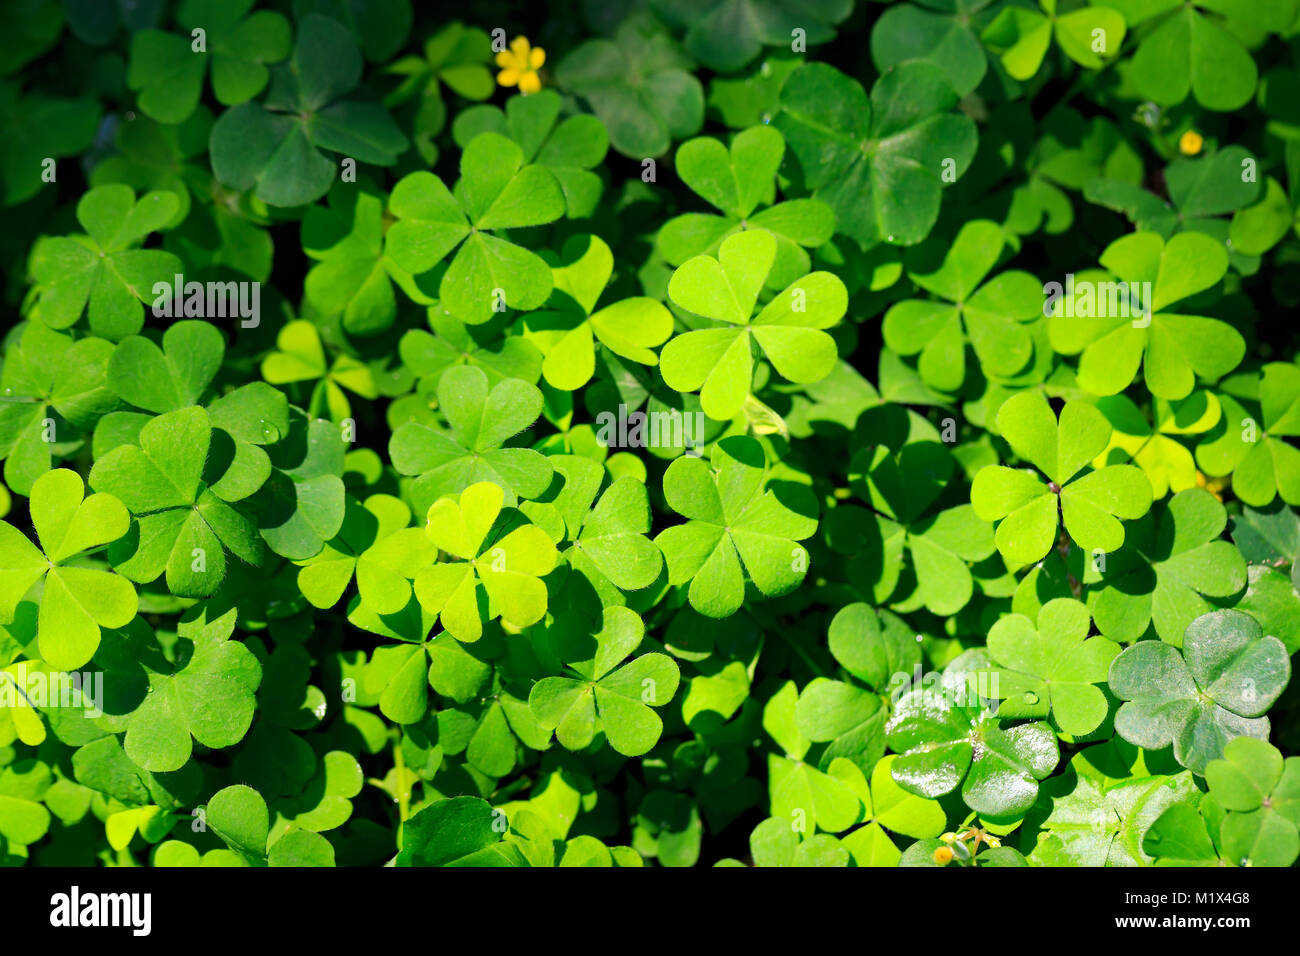 Clover and little yellow flower stock photo 173292680 alamy clover and little yellow flower mightylinksfo